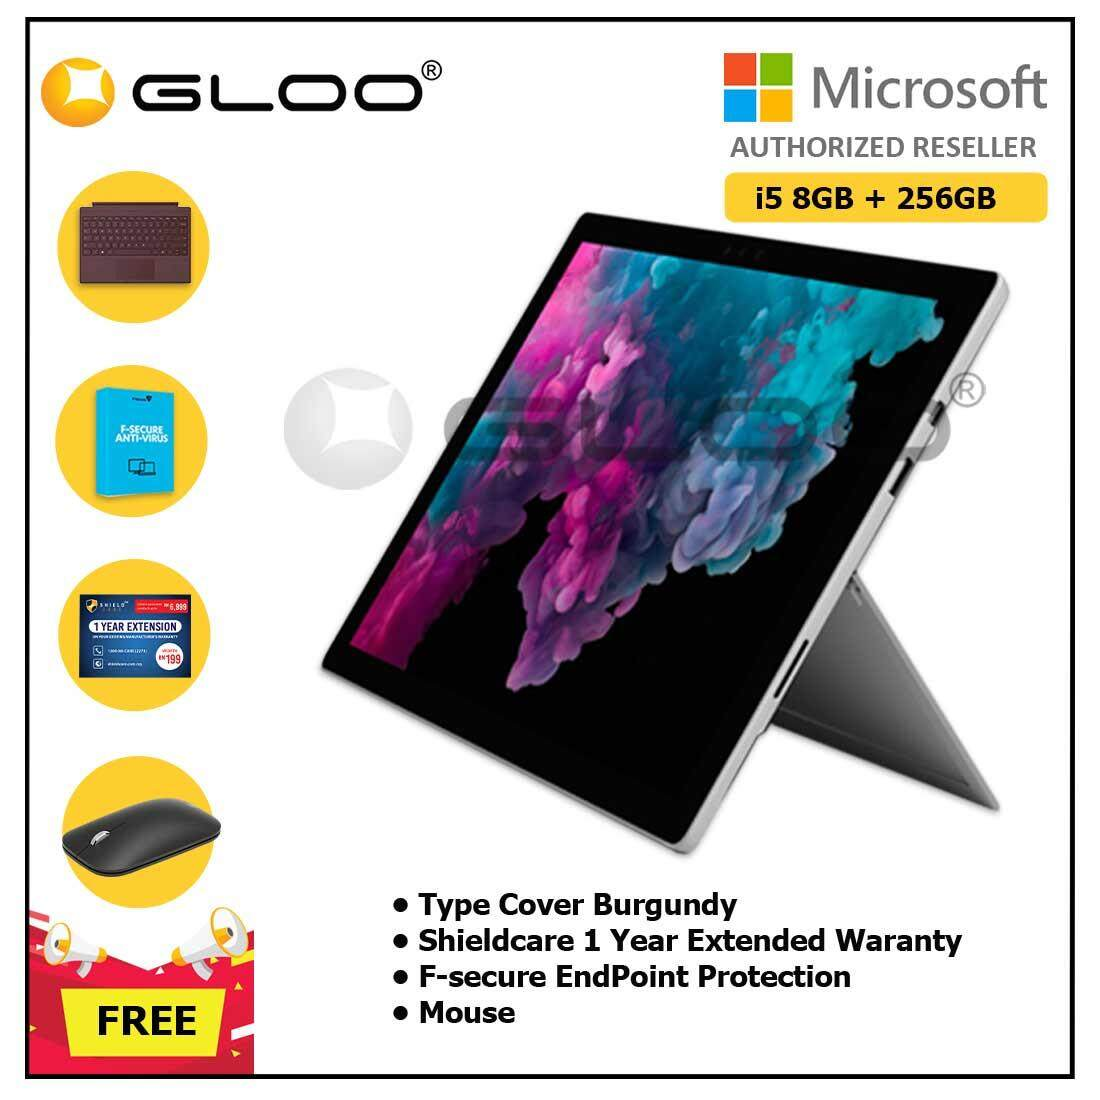 Microsoft Surface Pro 6 Core i5/8GB RAM - 256GB + Type Cover Burgundy + Shieldcare 1 Year Extended Warranty + F-Secure EndPoint Protection + Mouse